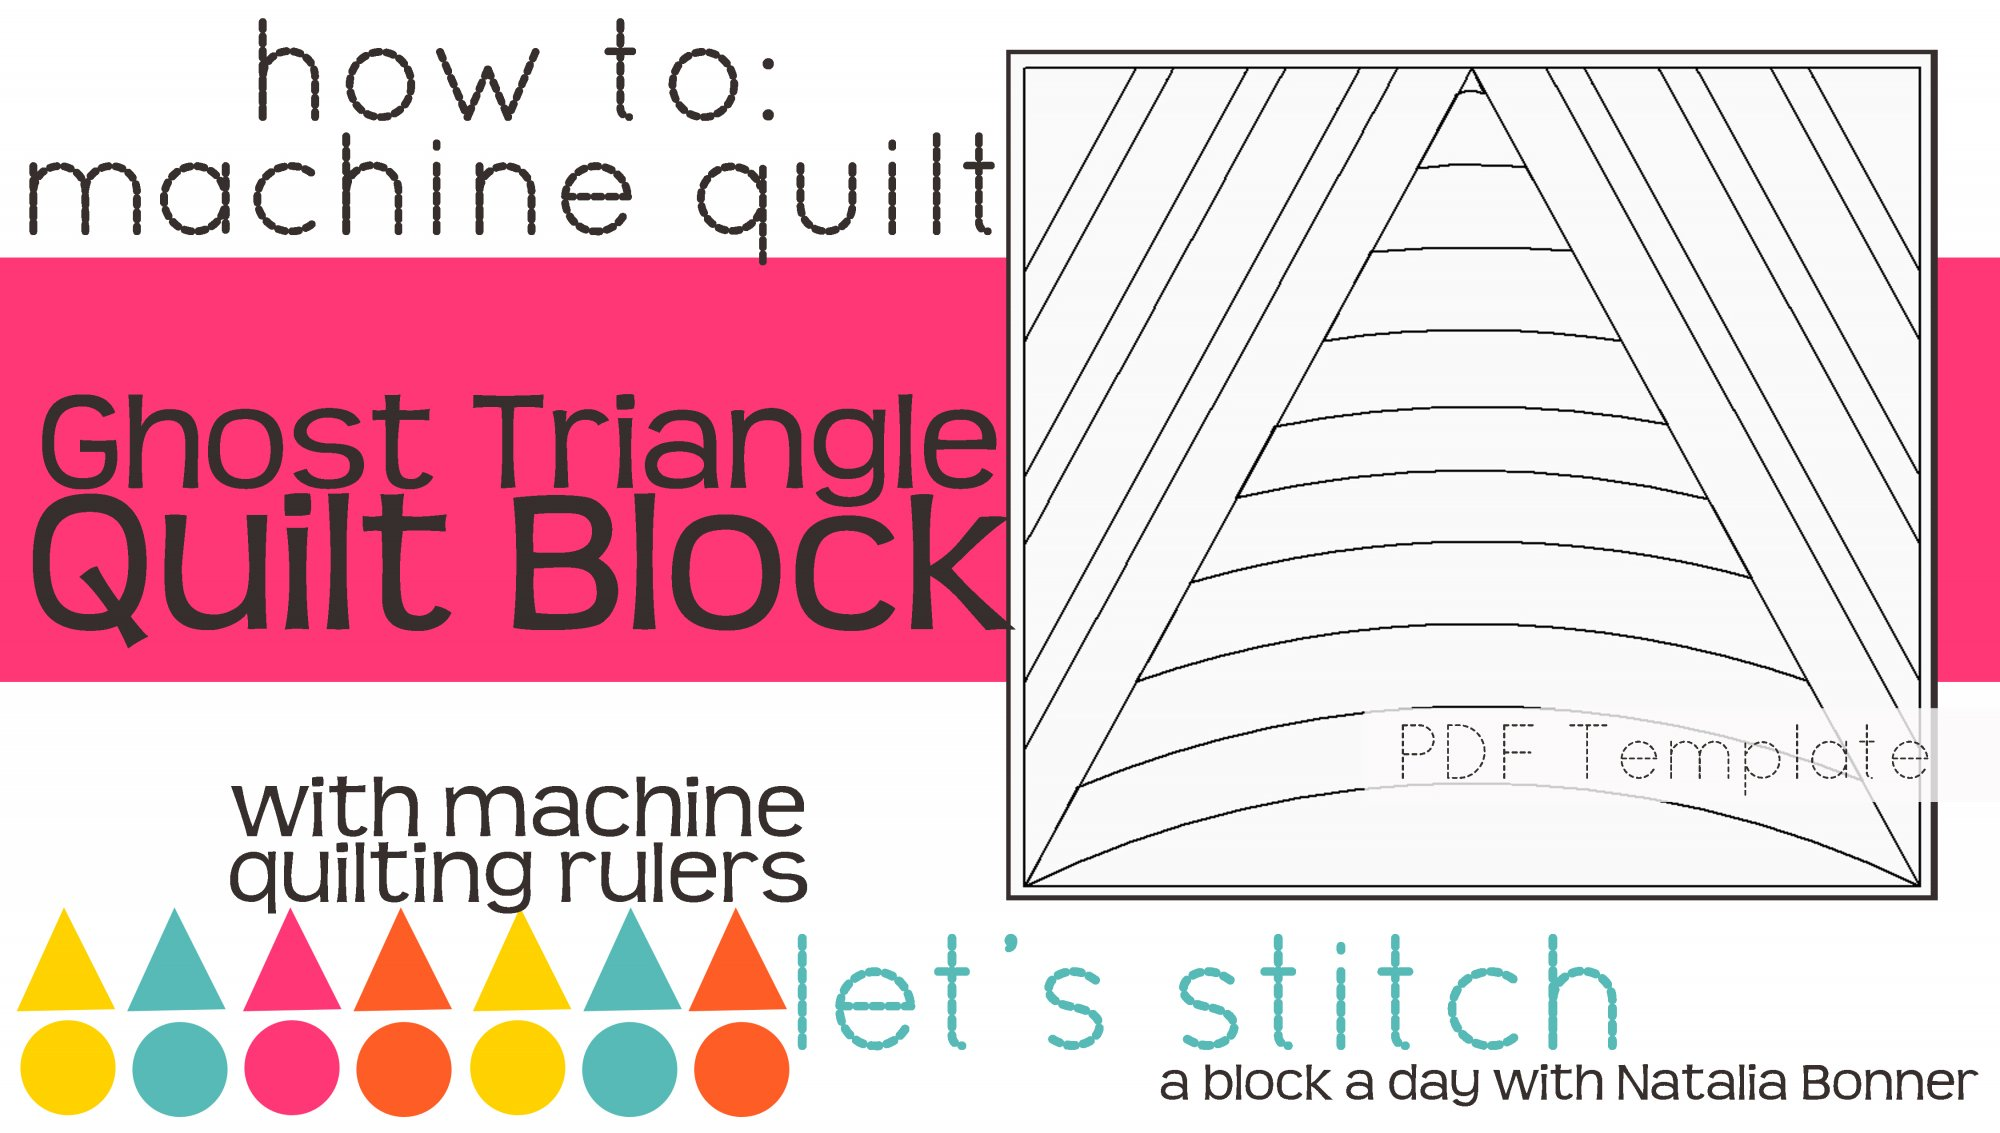 Let's Stitch - A Block a Day With Natalia Bonner - PDF - Ghost Triangle